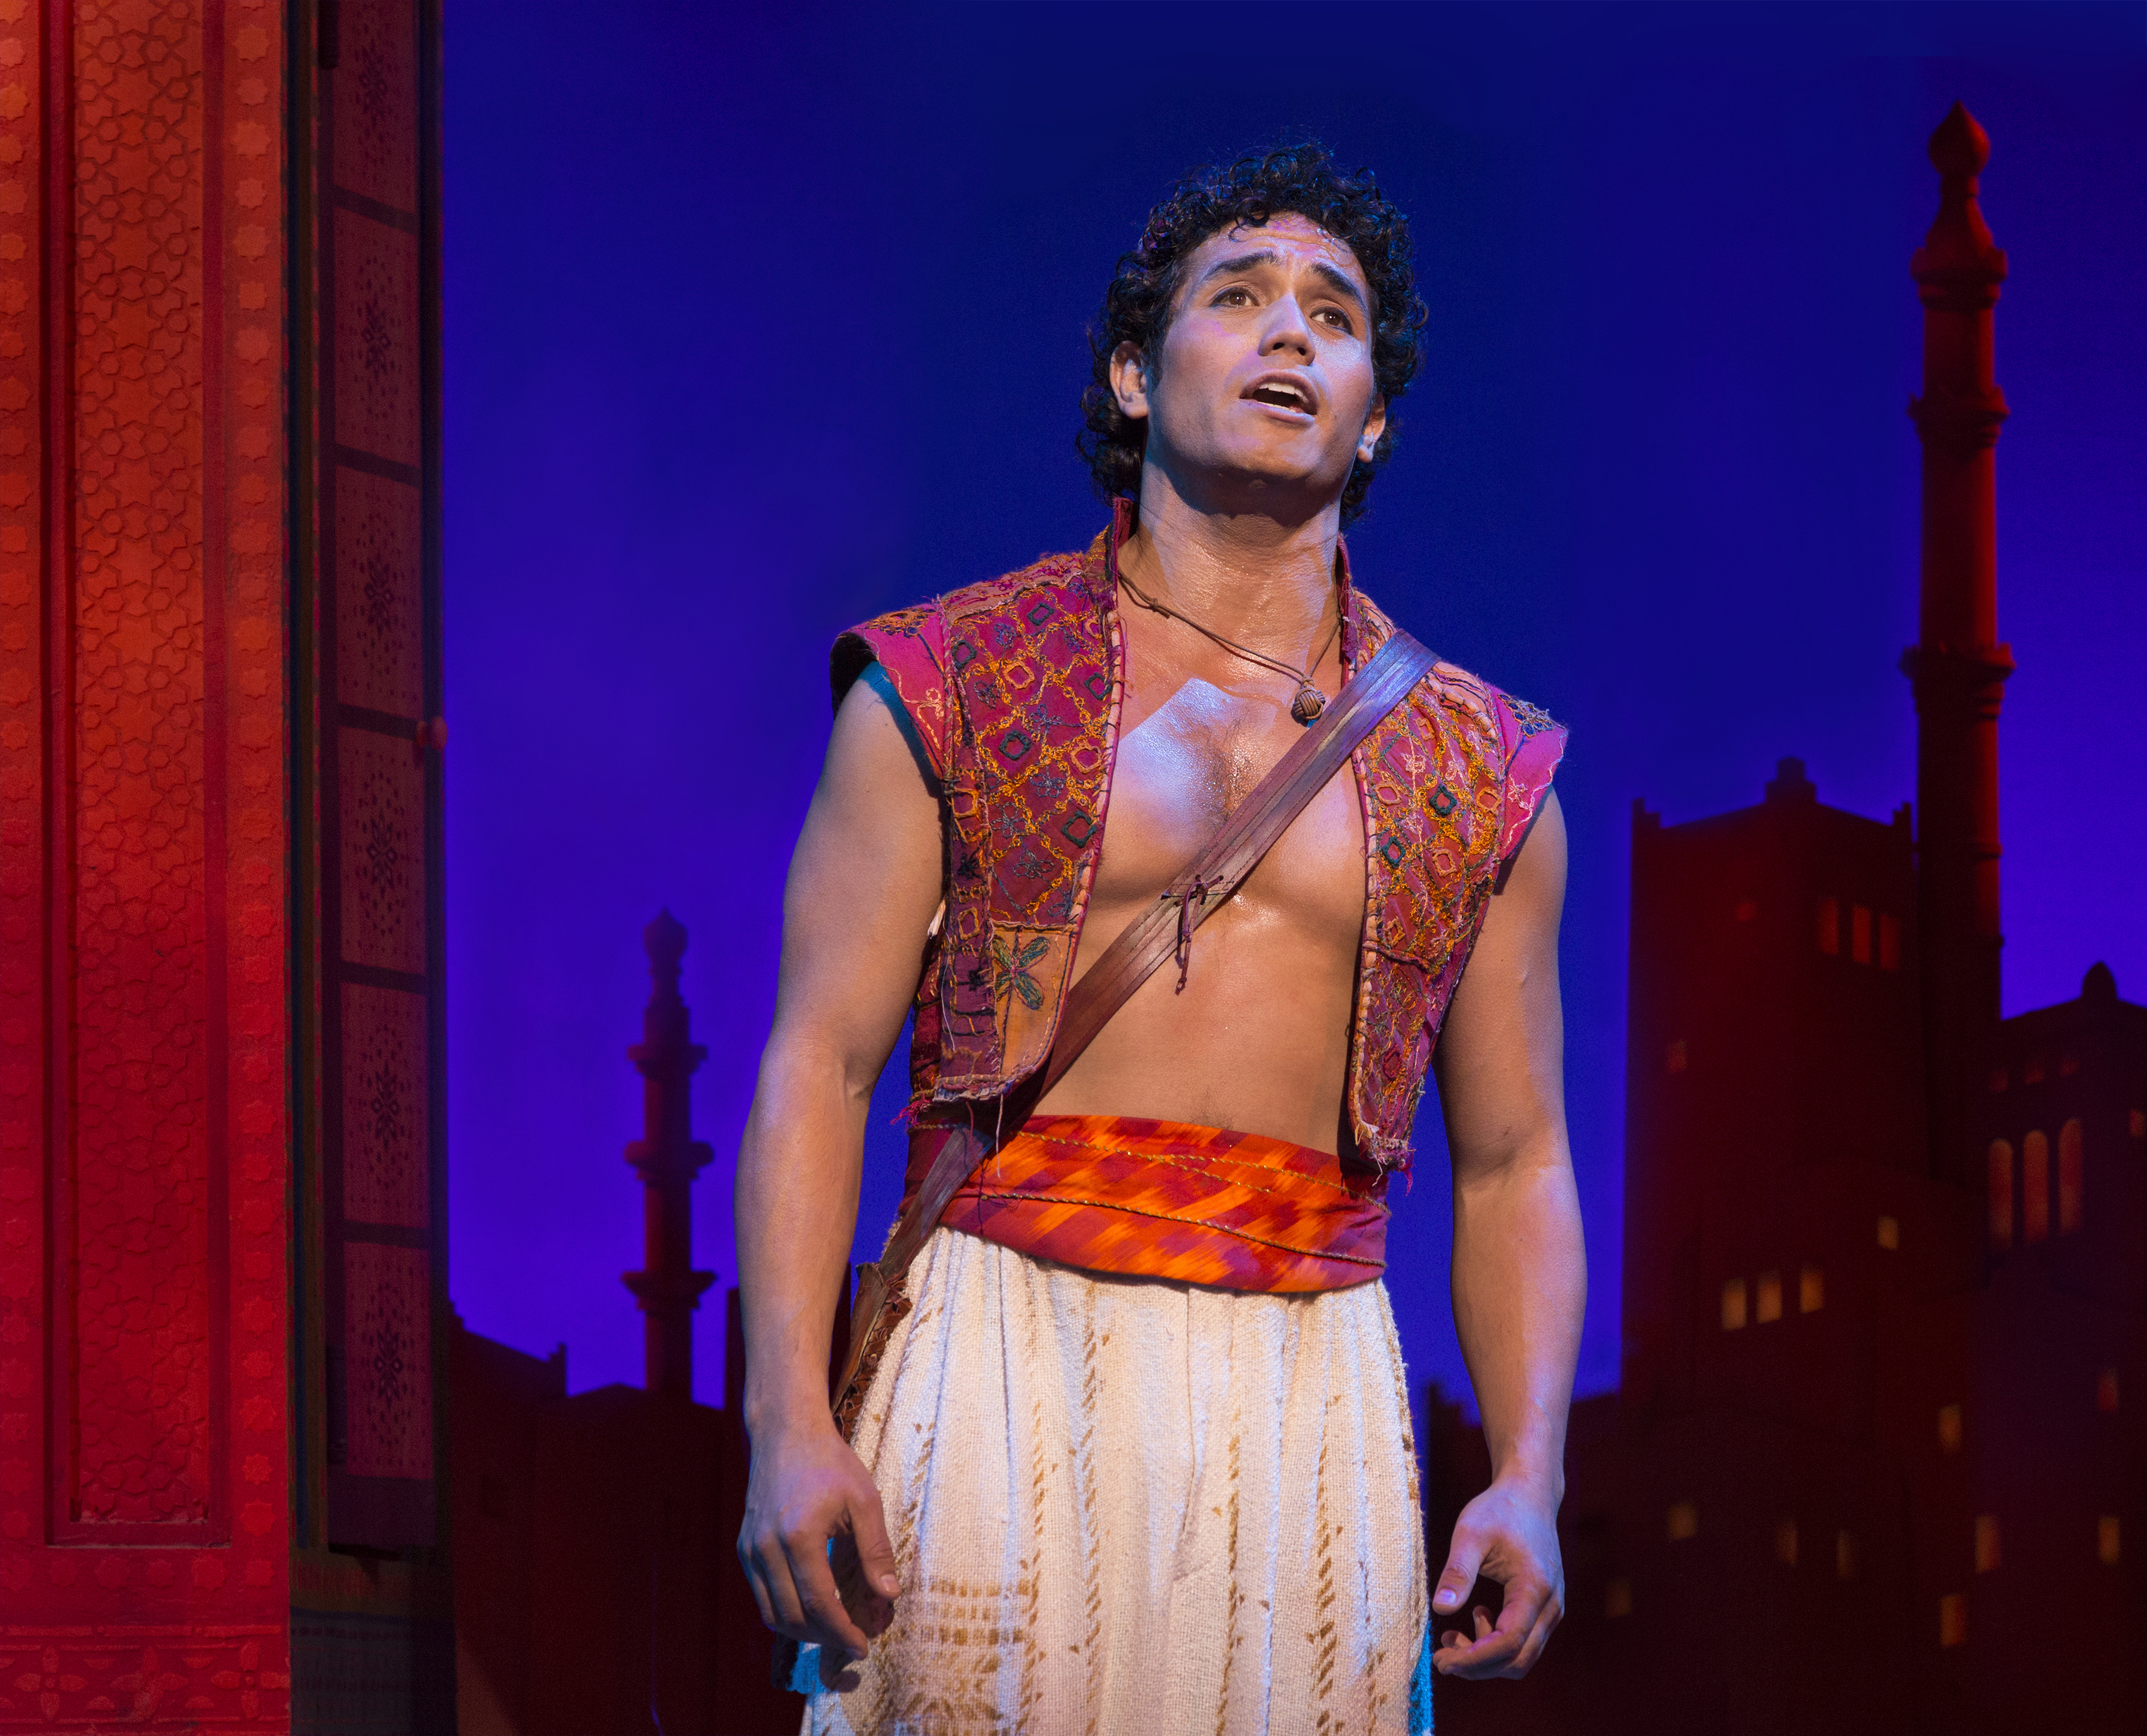 Adam Jacobs as Aladdin (Photo by Cylla von Tiedemann)